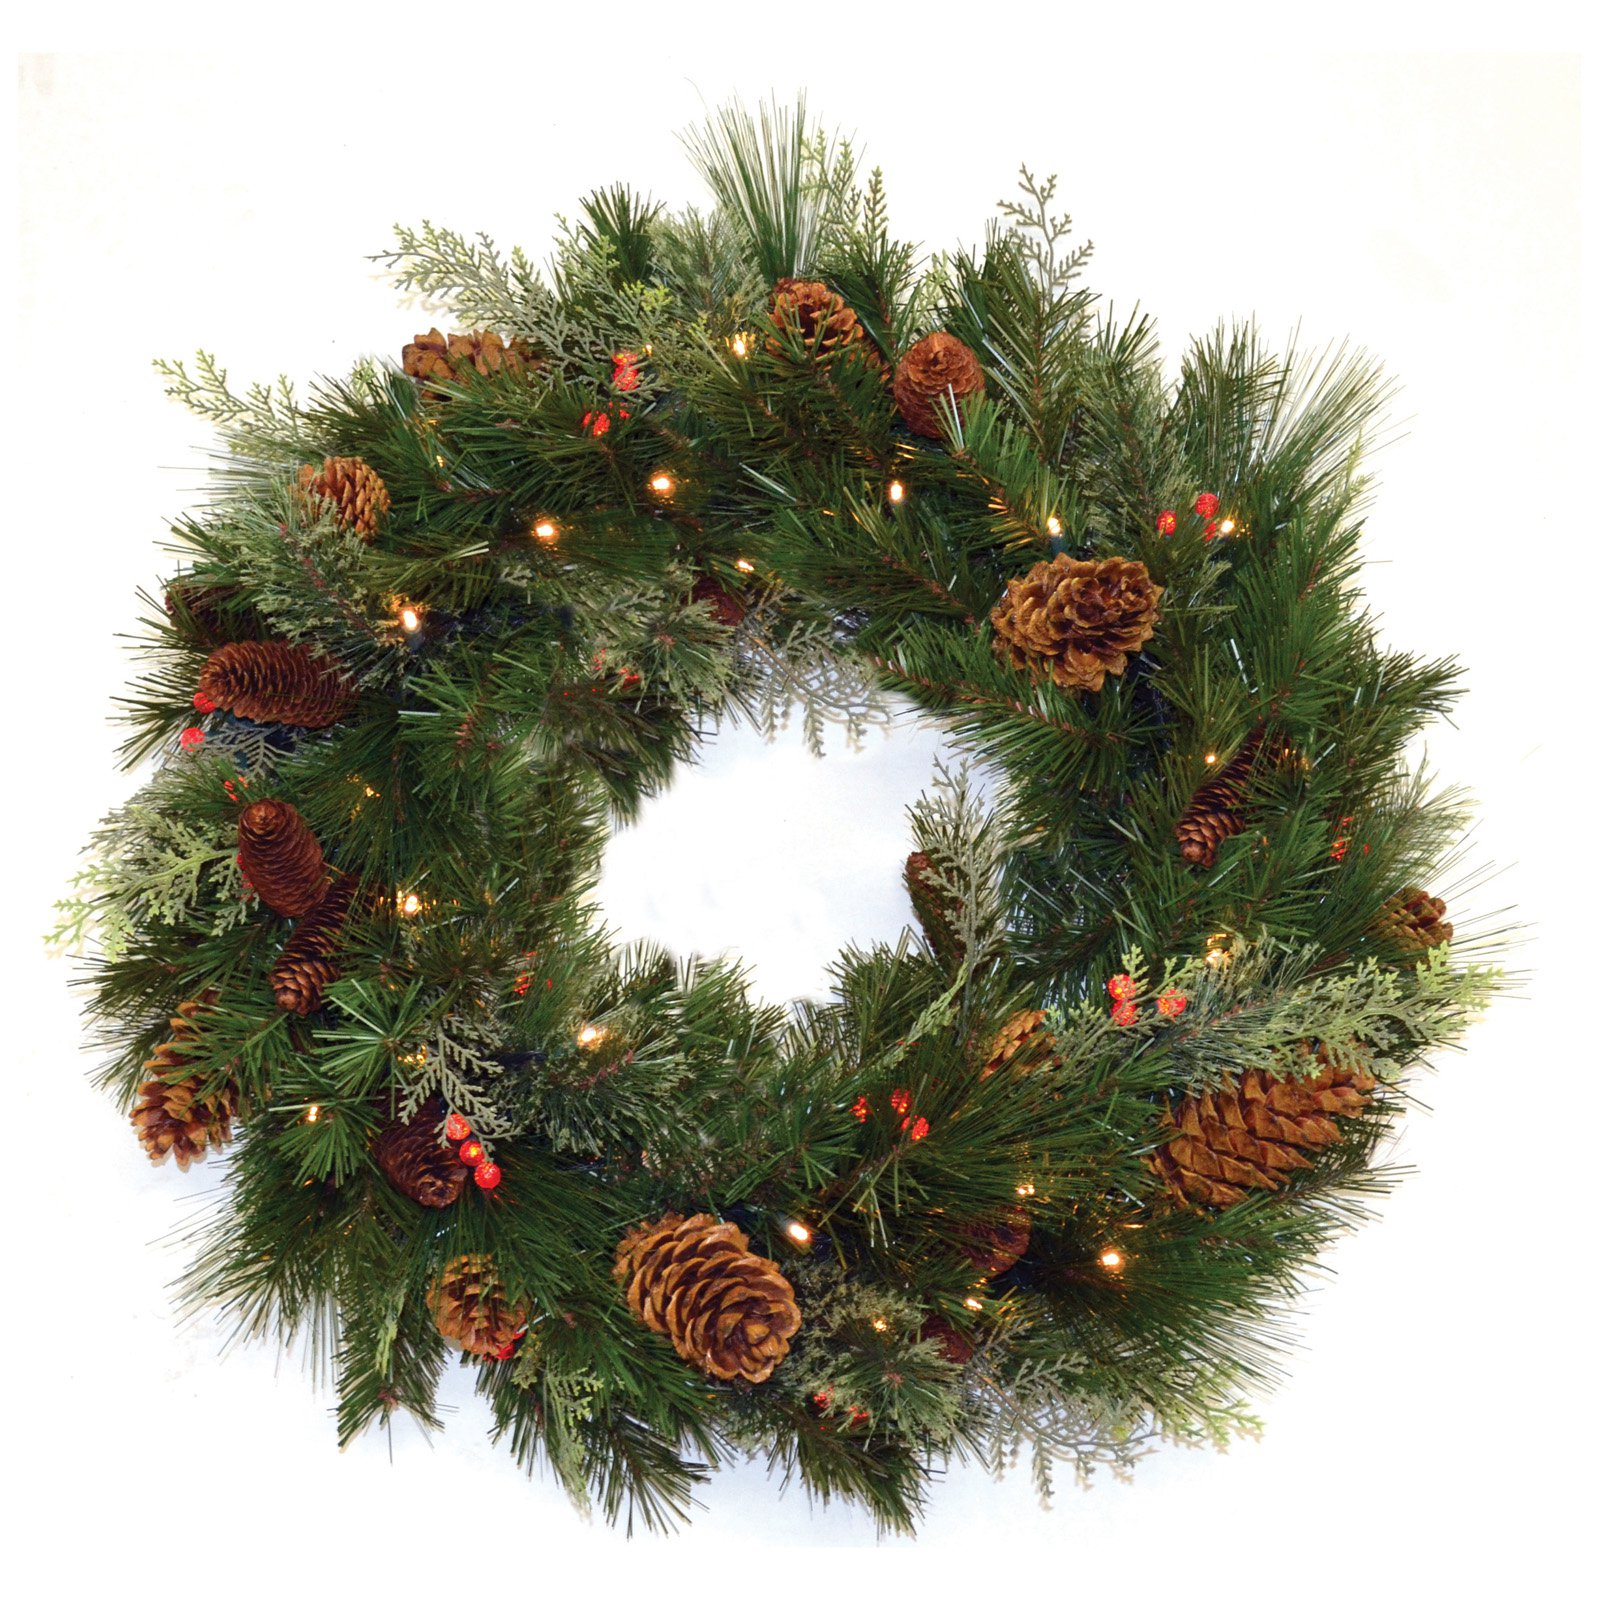 30 in. White Pine Pre-lit LED Wreath - Battery Operated